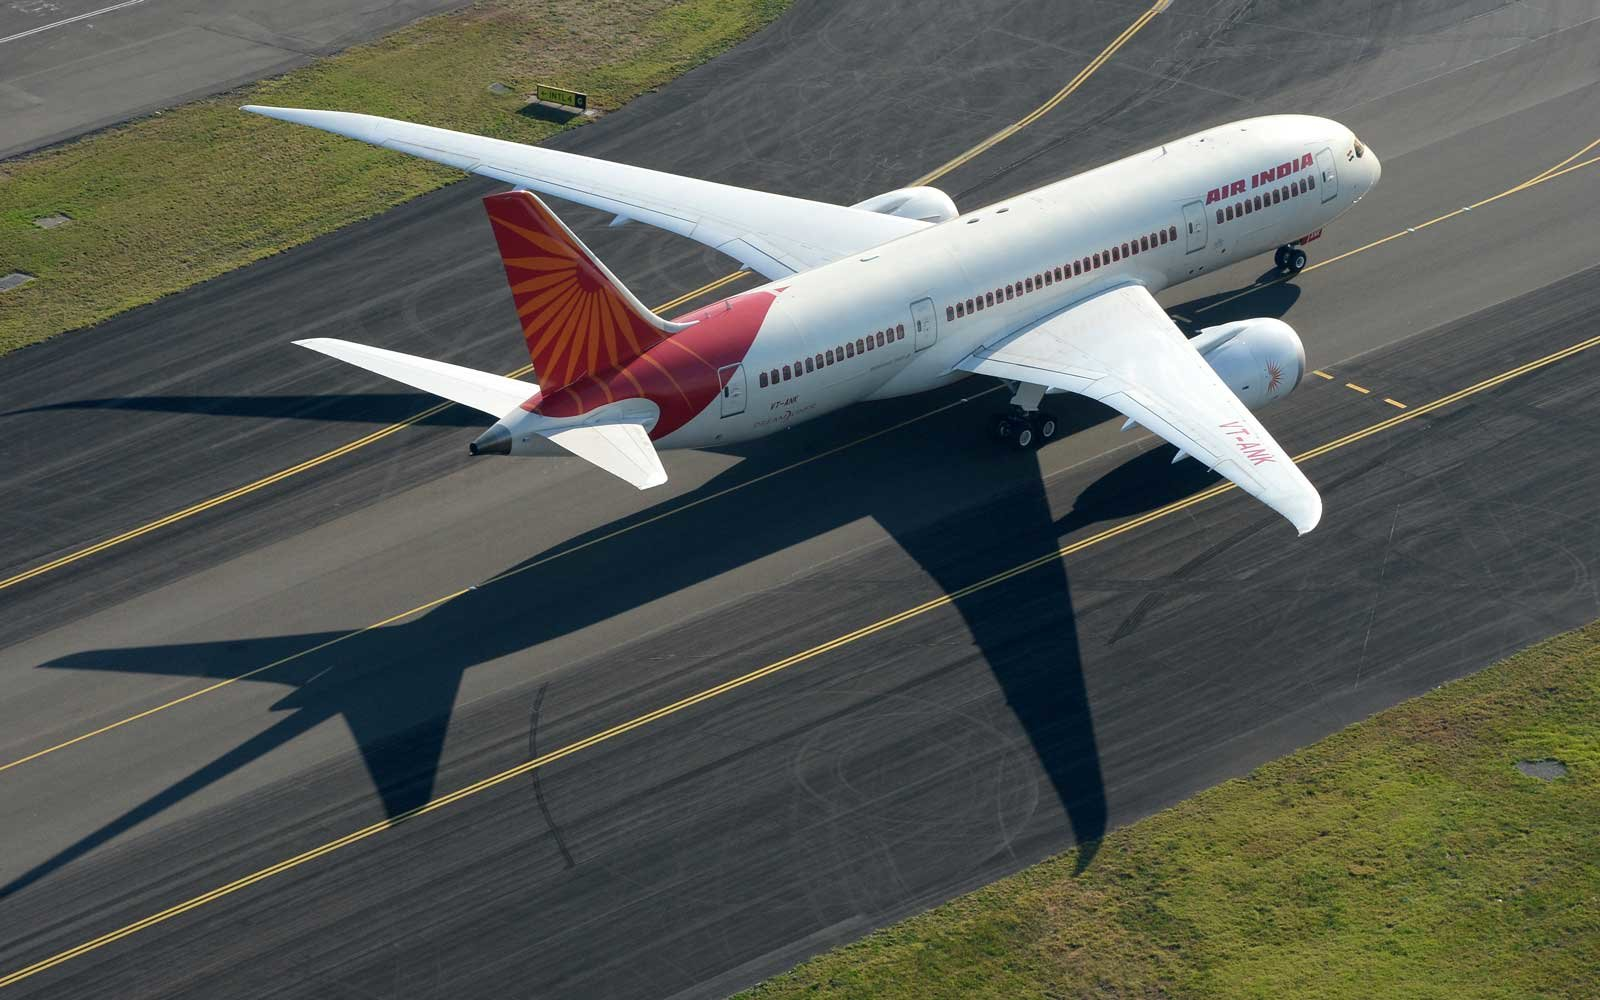 Air India Dreamliner Boeing 787